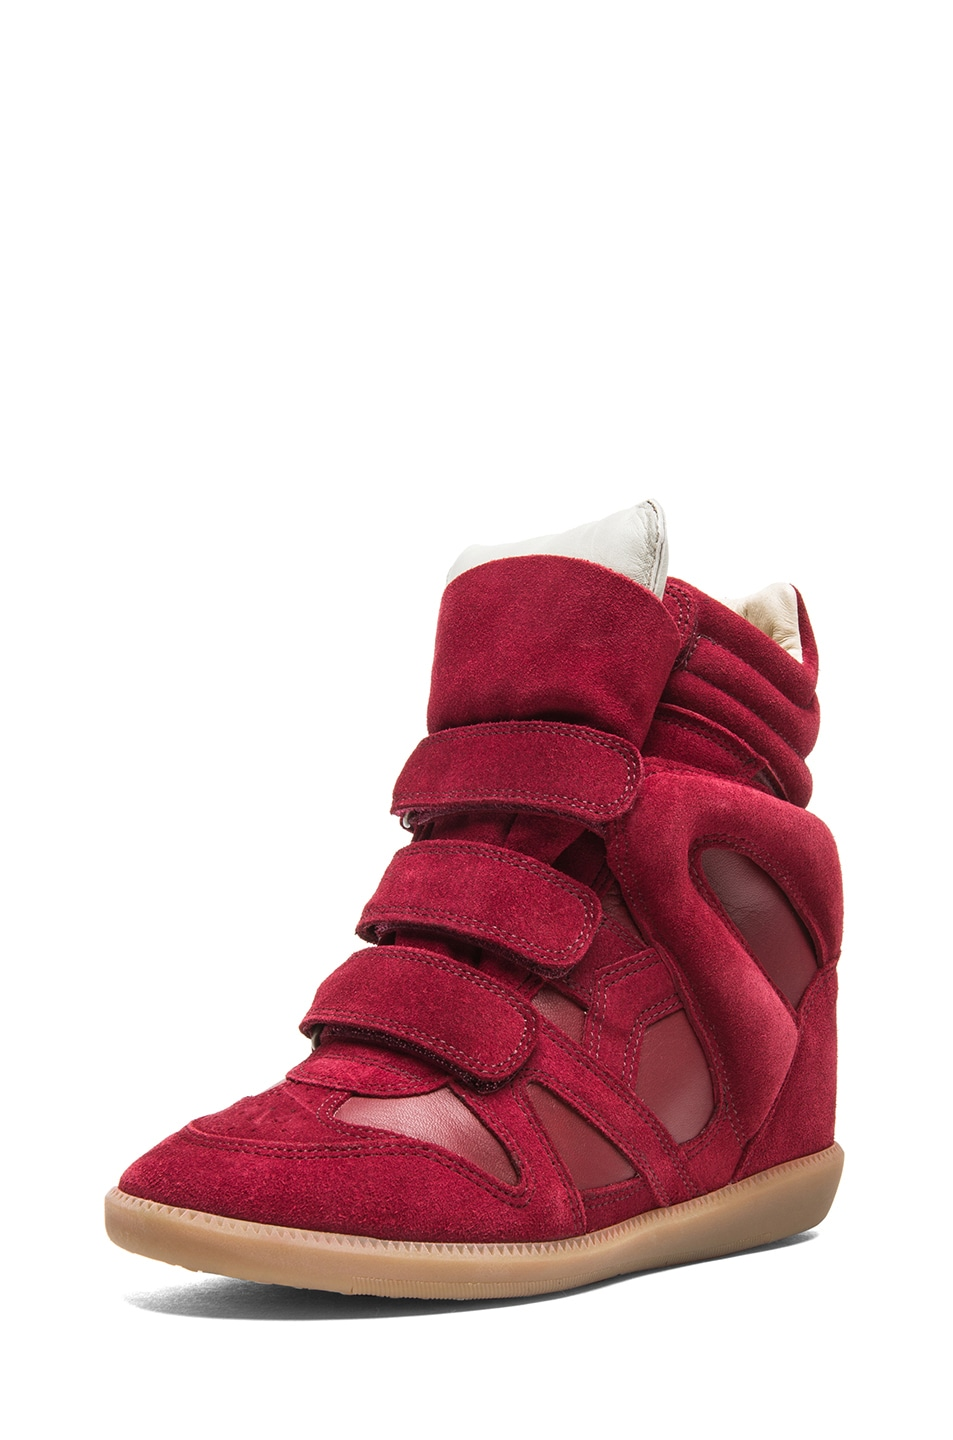 Image 2 of Isabel Marant Burt Calfskin Velvet Leather Sneakers in Burgundy